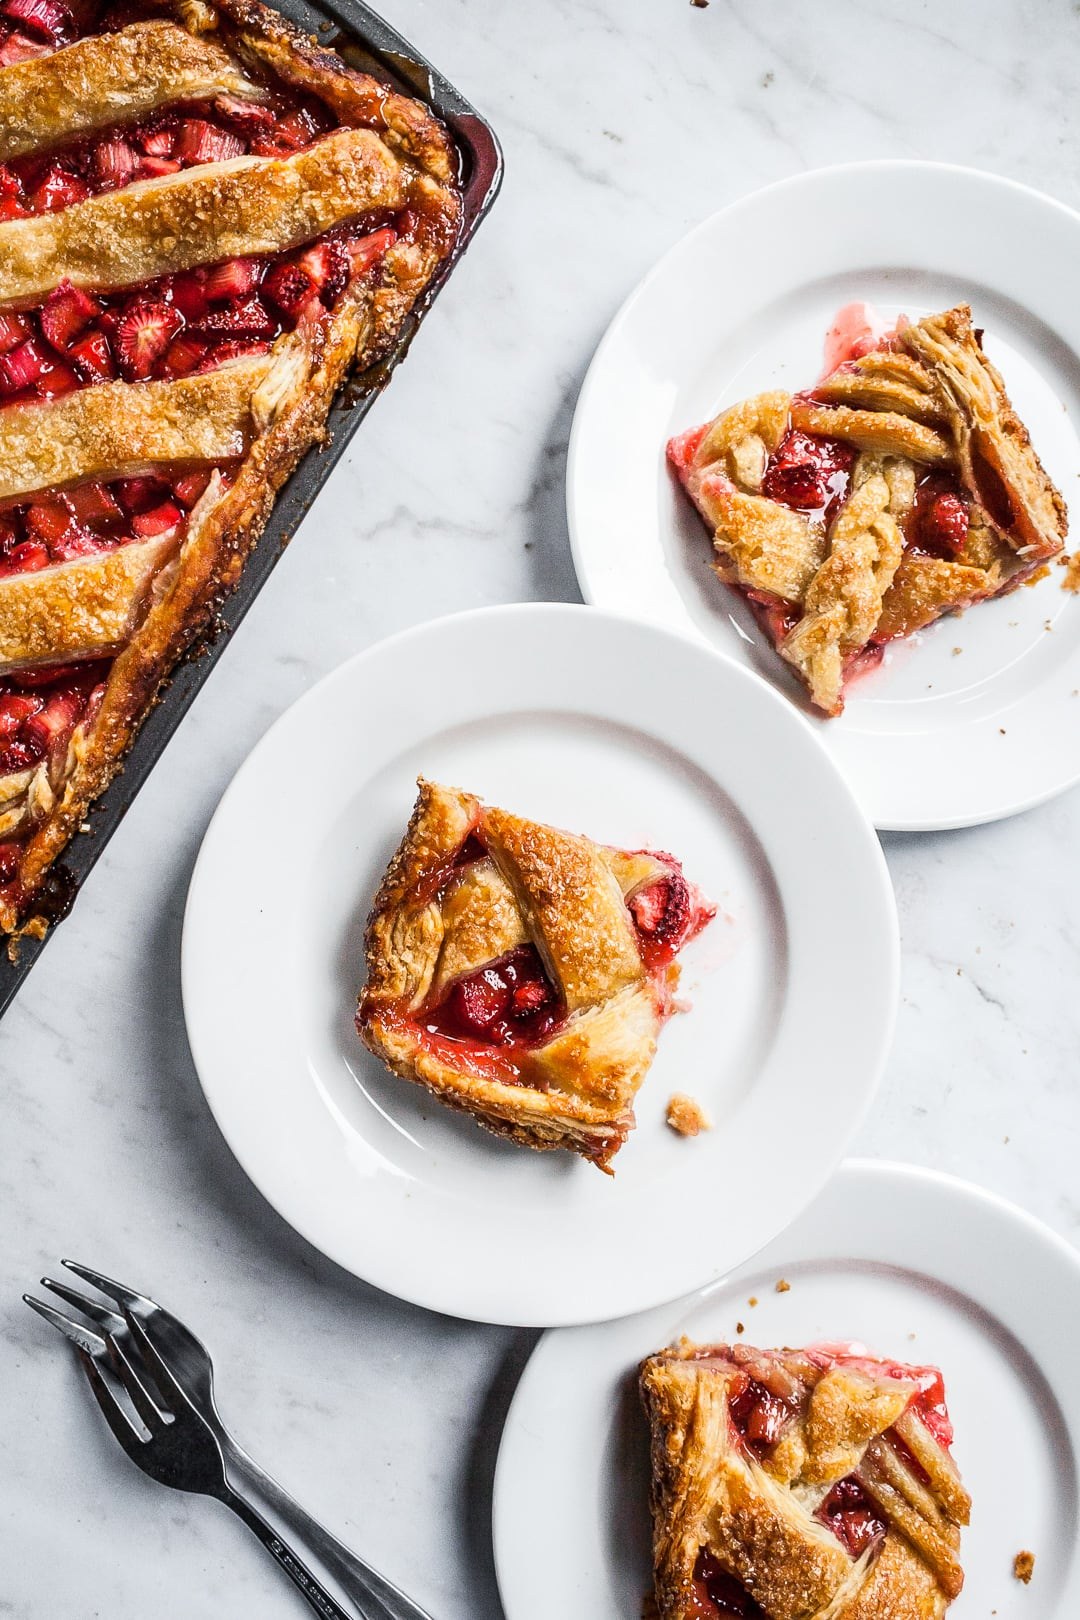 Slices of slab pie on white plates next to a sheet pan of slab pie